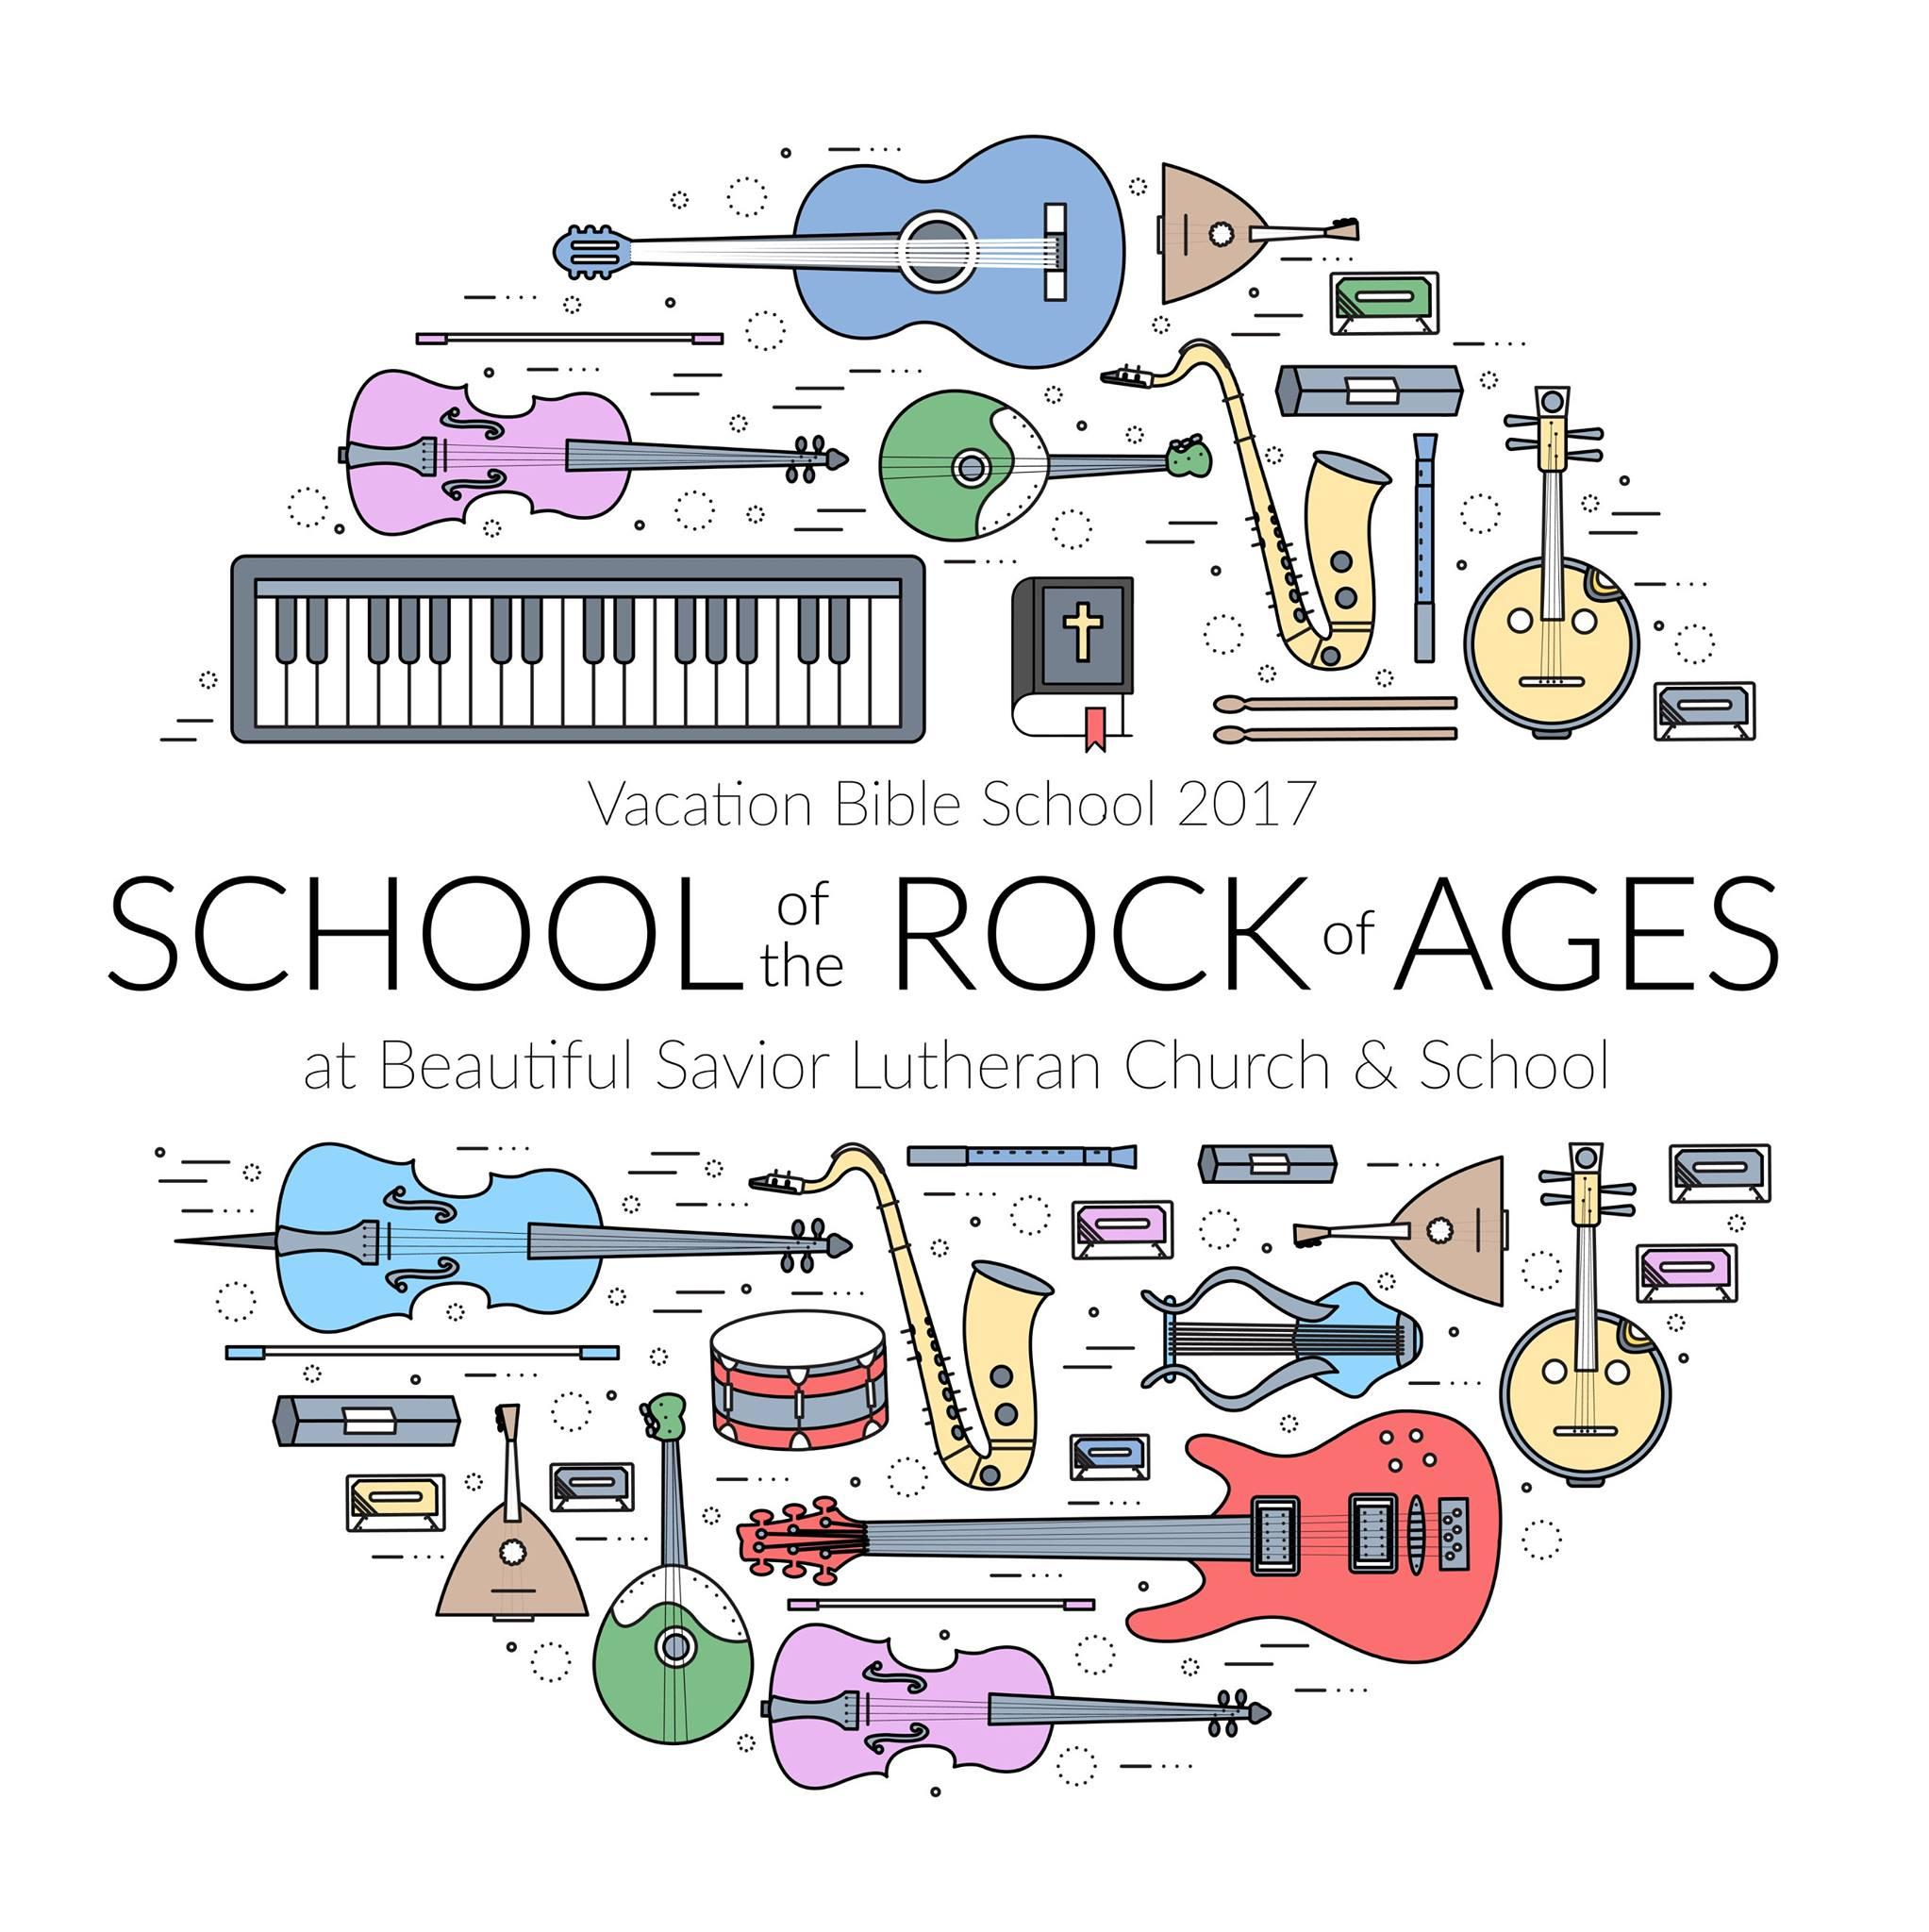 School of the Rock of Ages | Grove City, OH | Beautiful Savior Lutheran Church | June 19, 2017